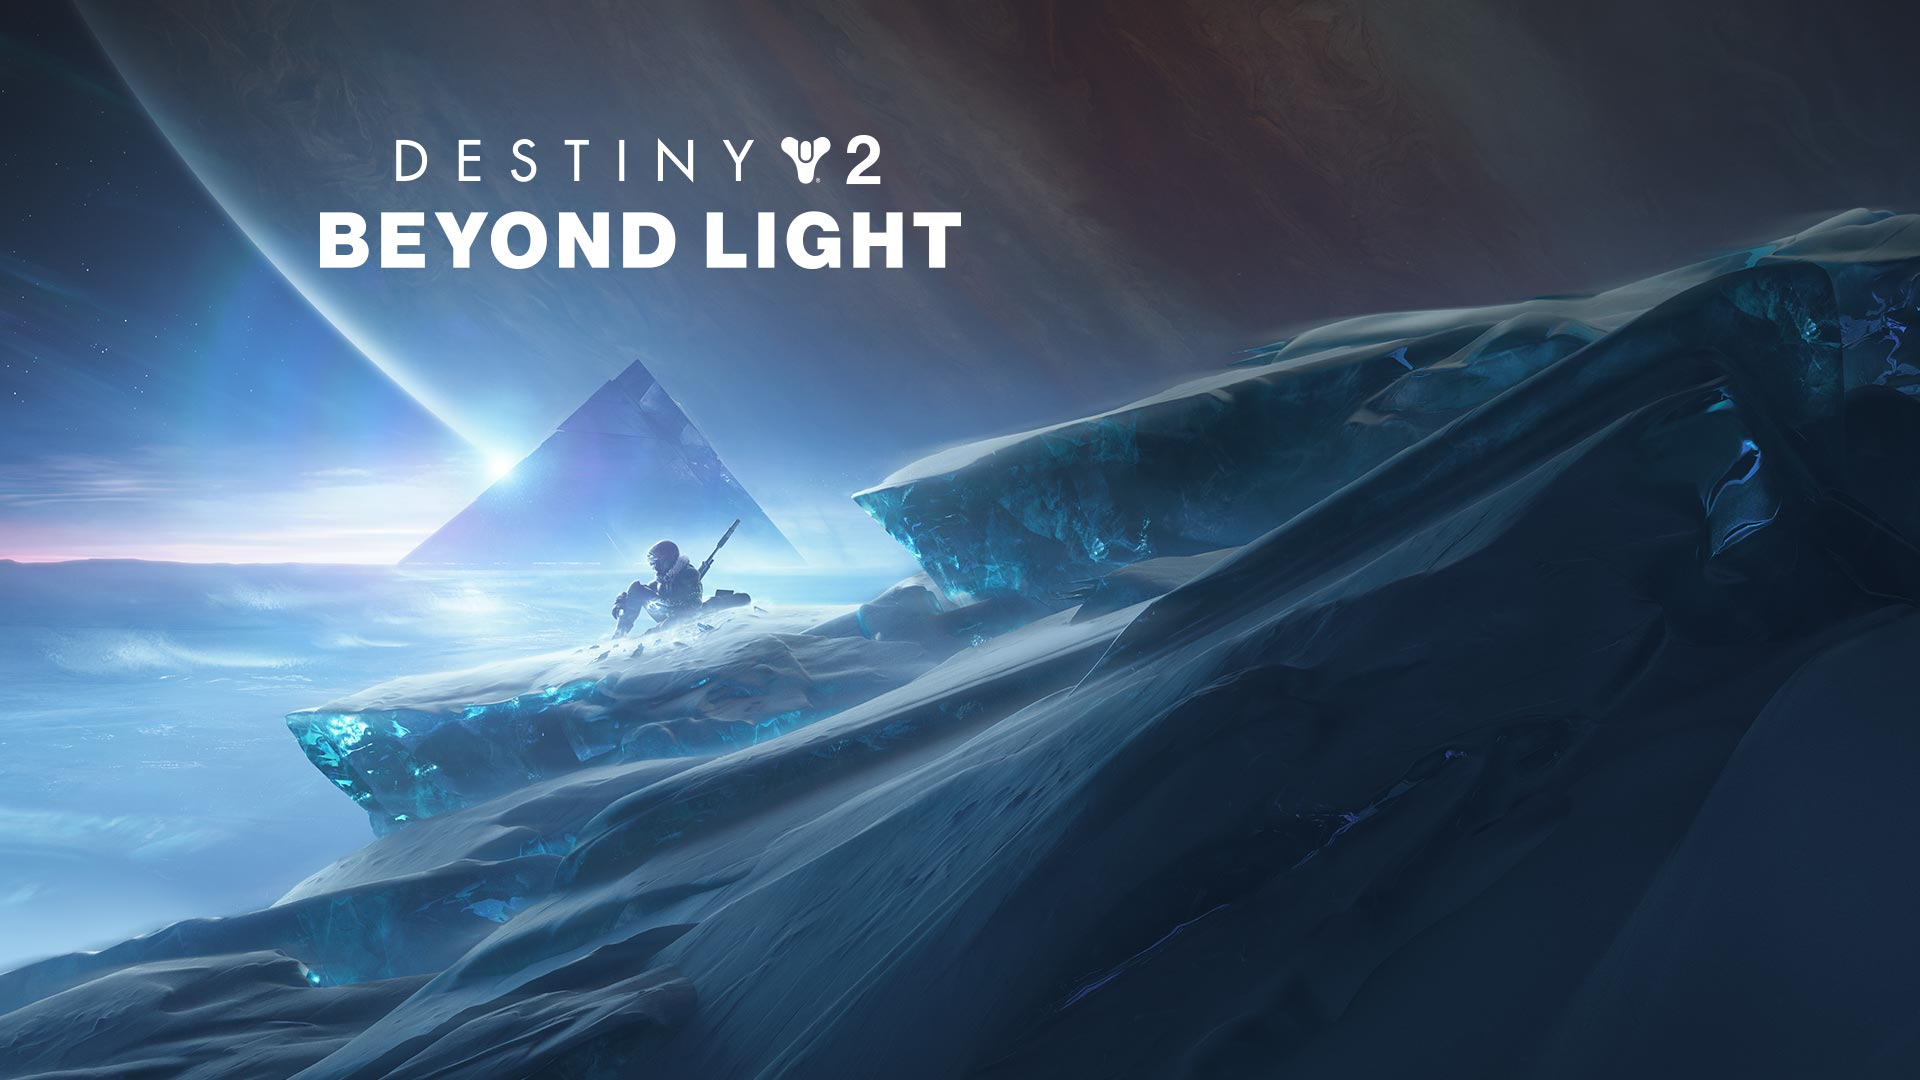 Destiny 2: Beyond Light, character sitting on a mountain with a pyramid in the background